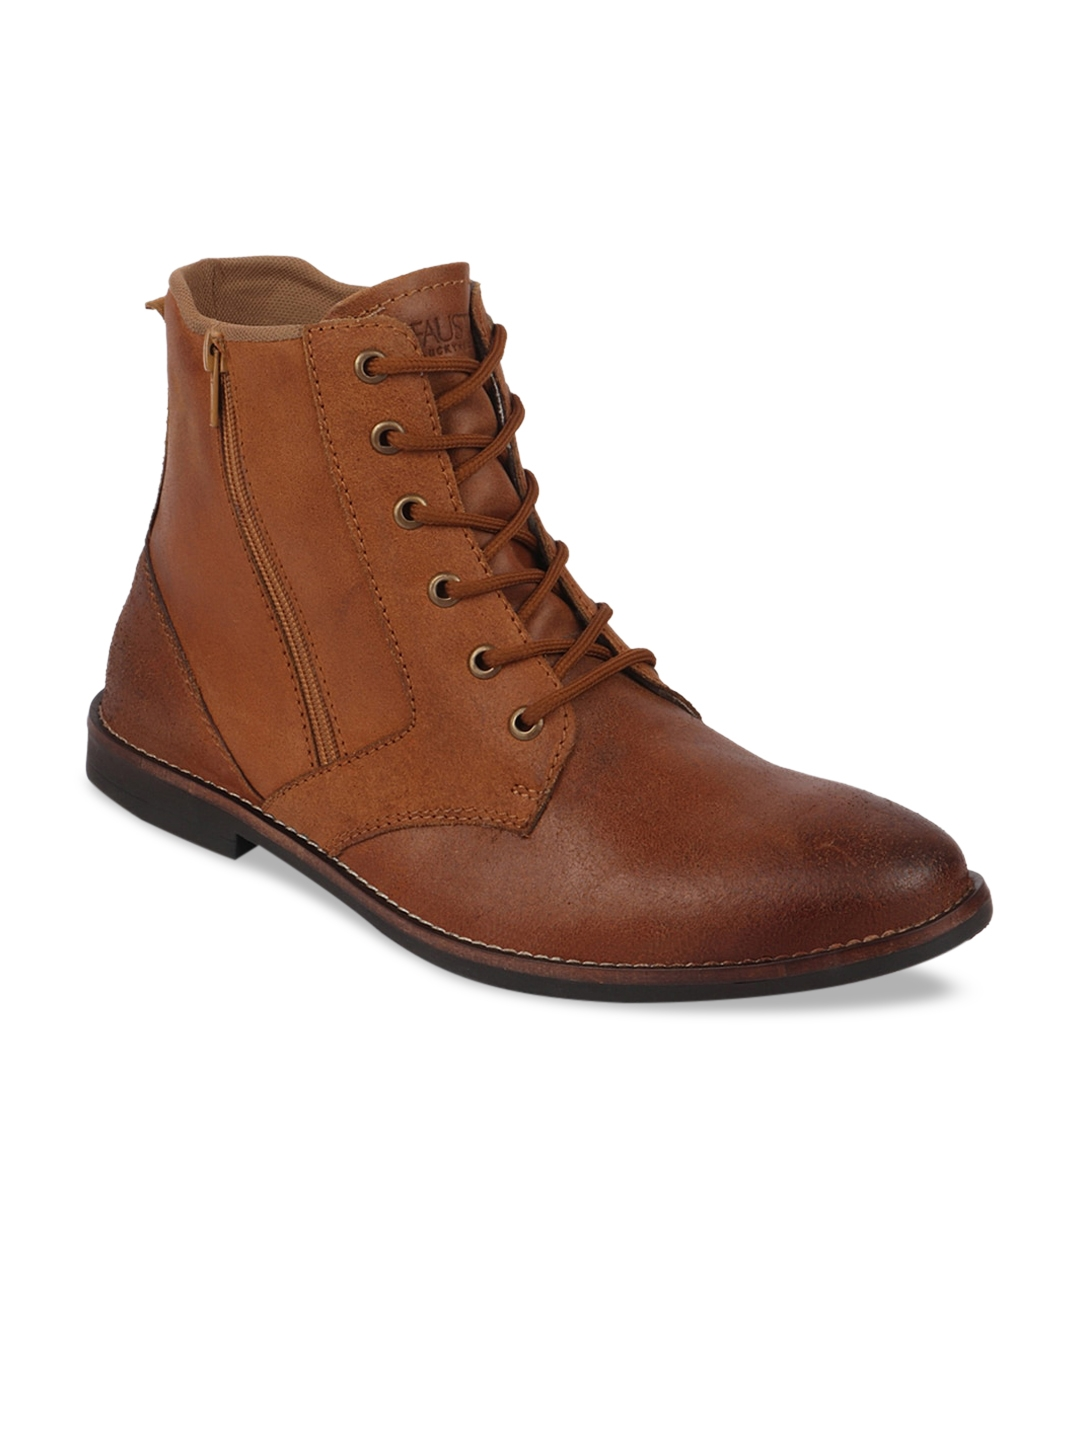 FAUSTO Men Leather Flat Boots Casual Shoes